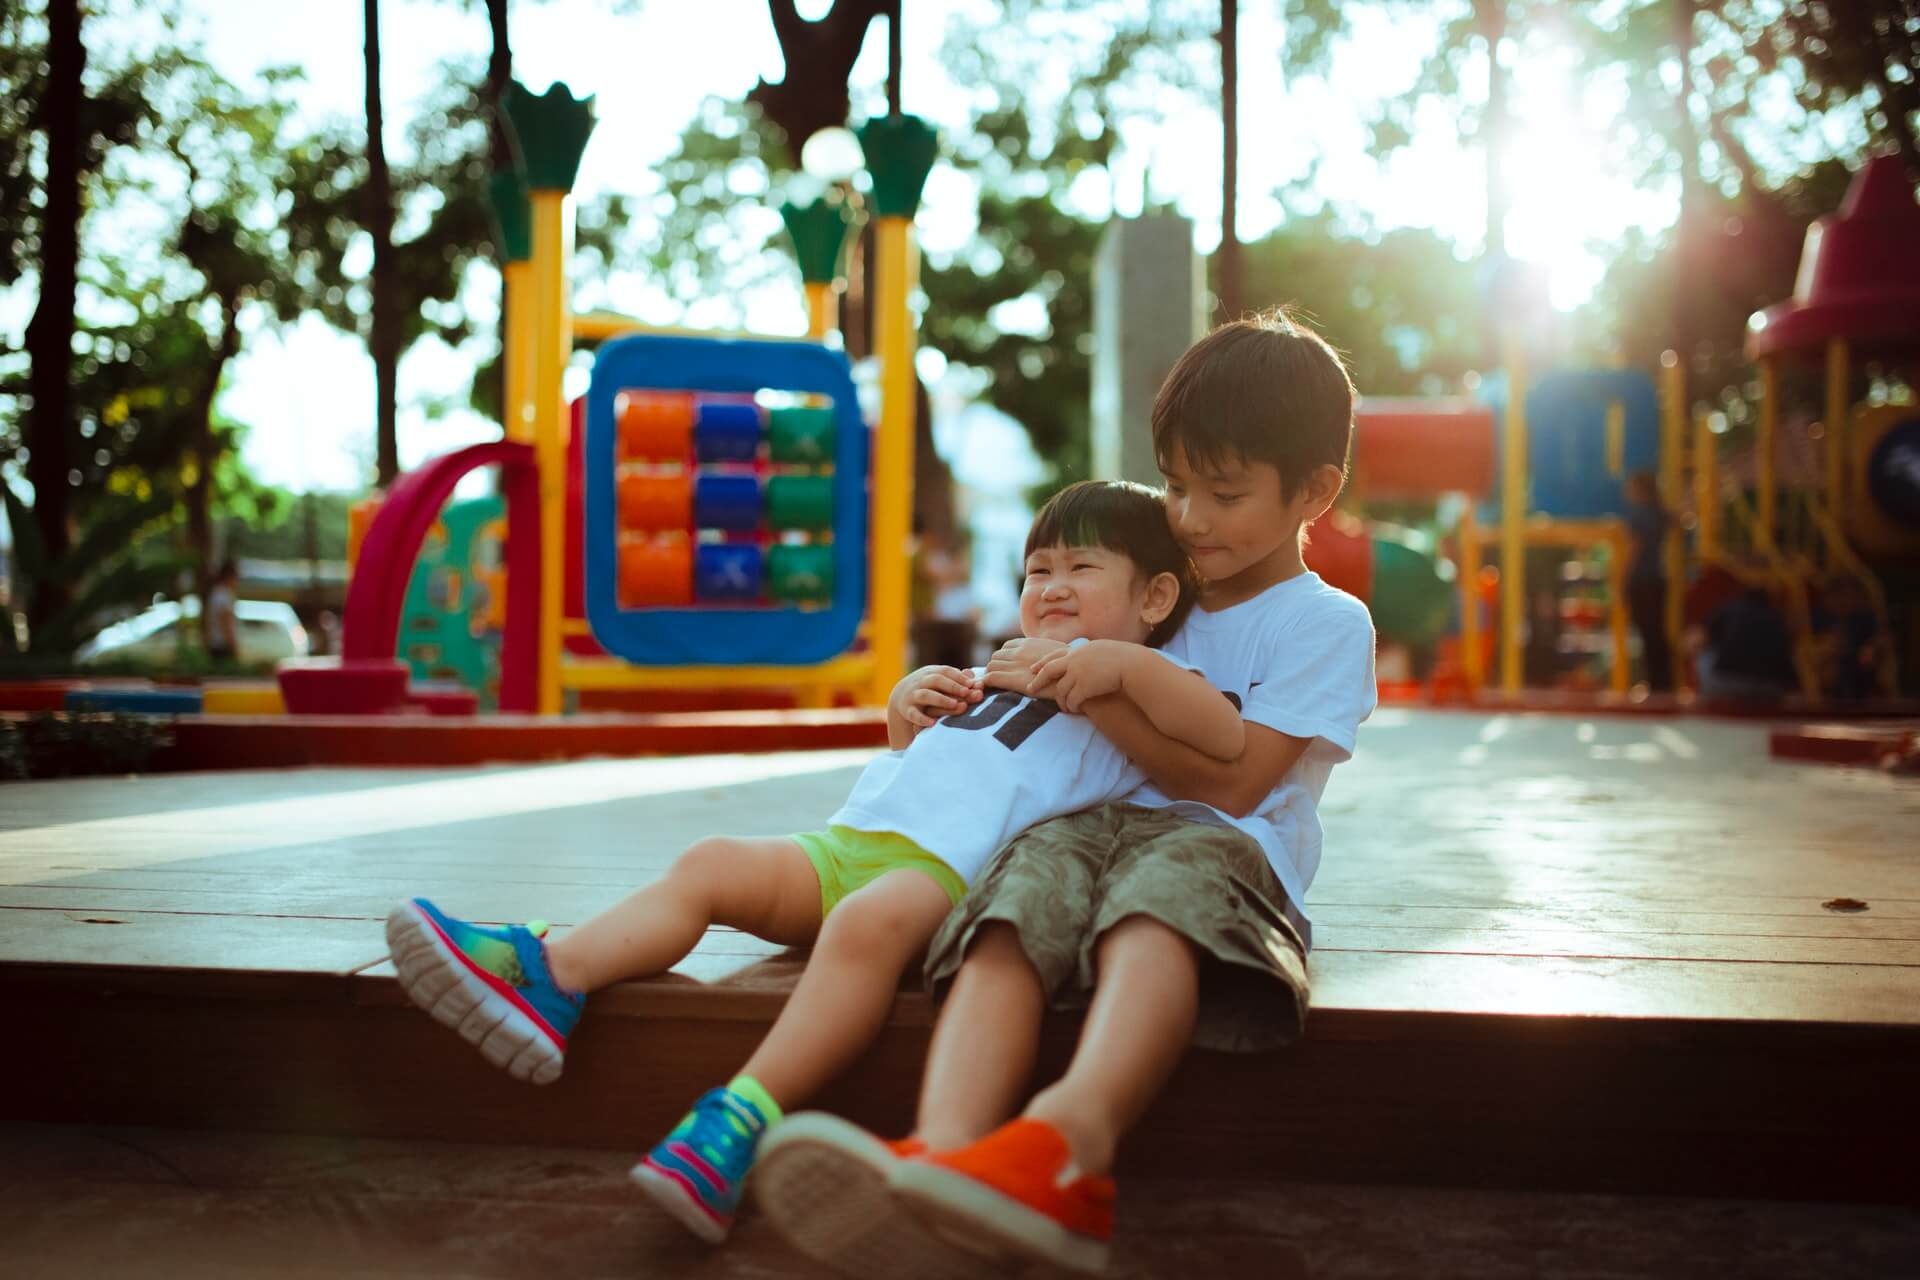 5 Traits to Look For In a Playground Build Partner